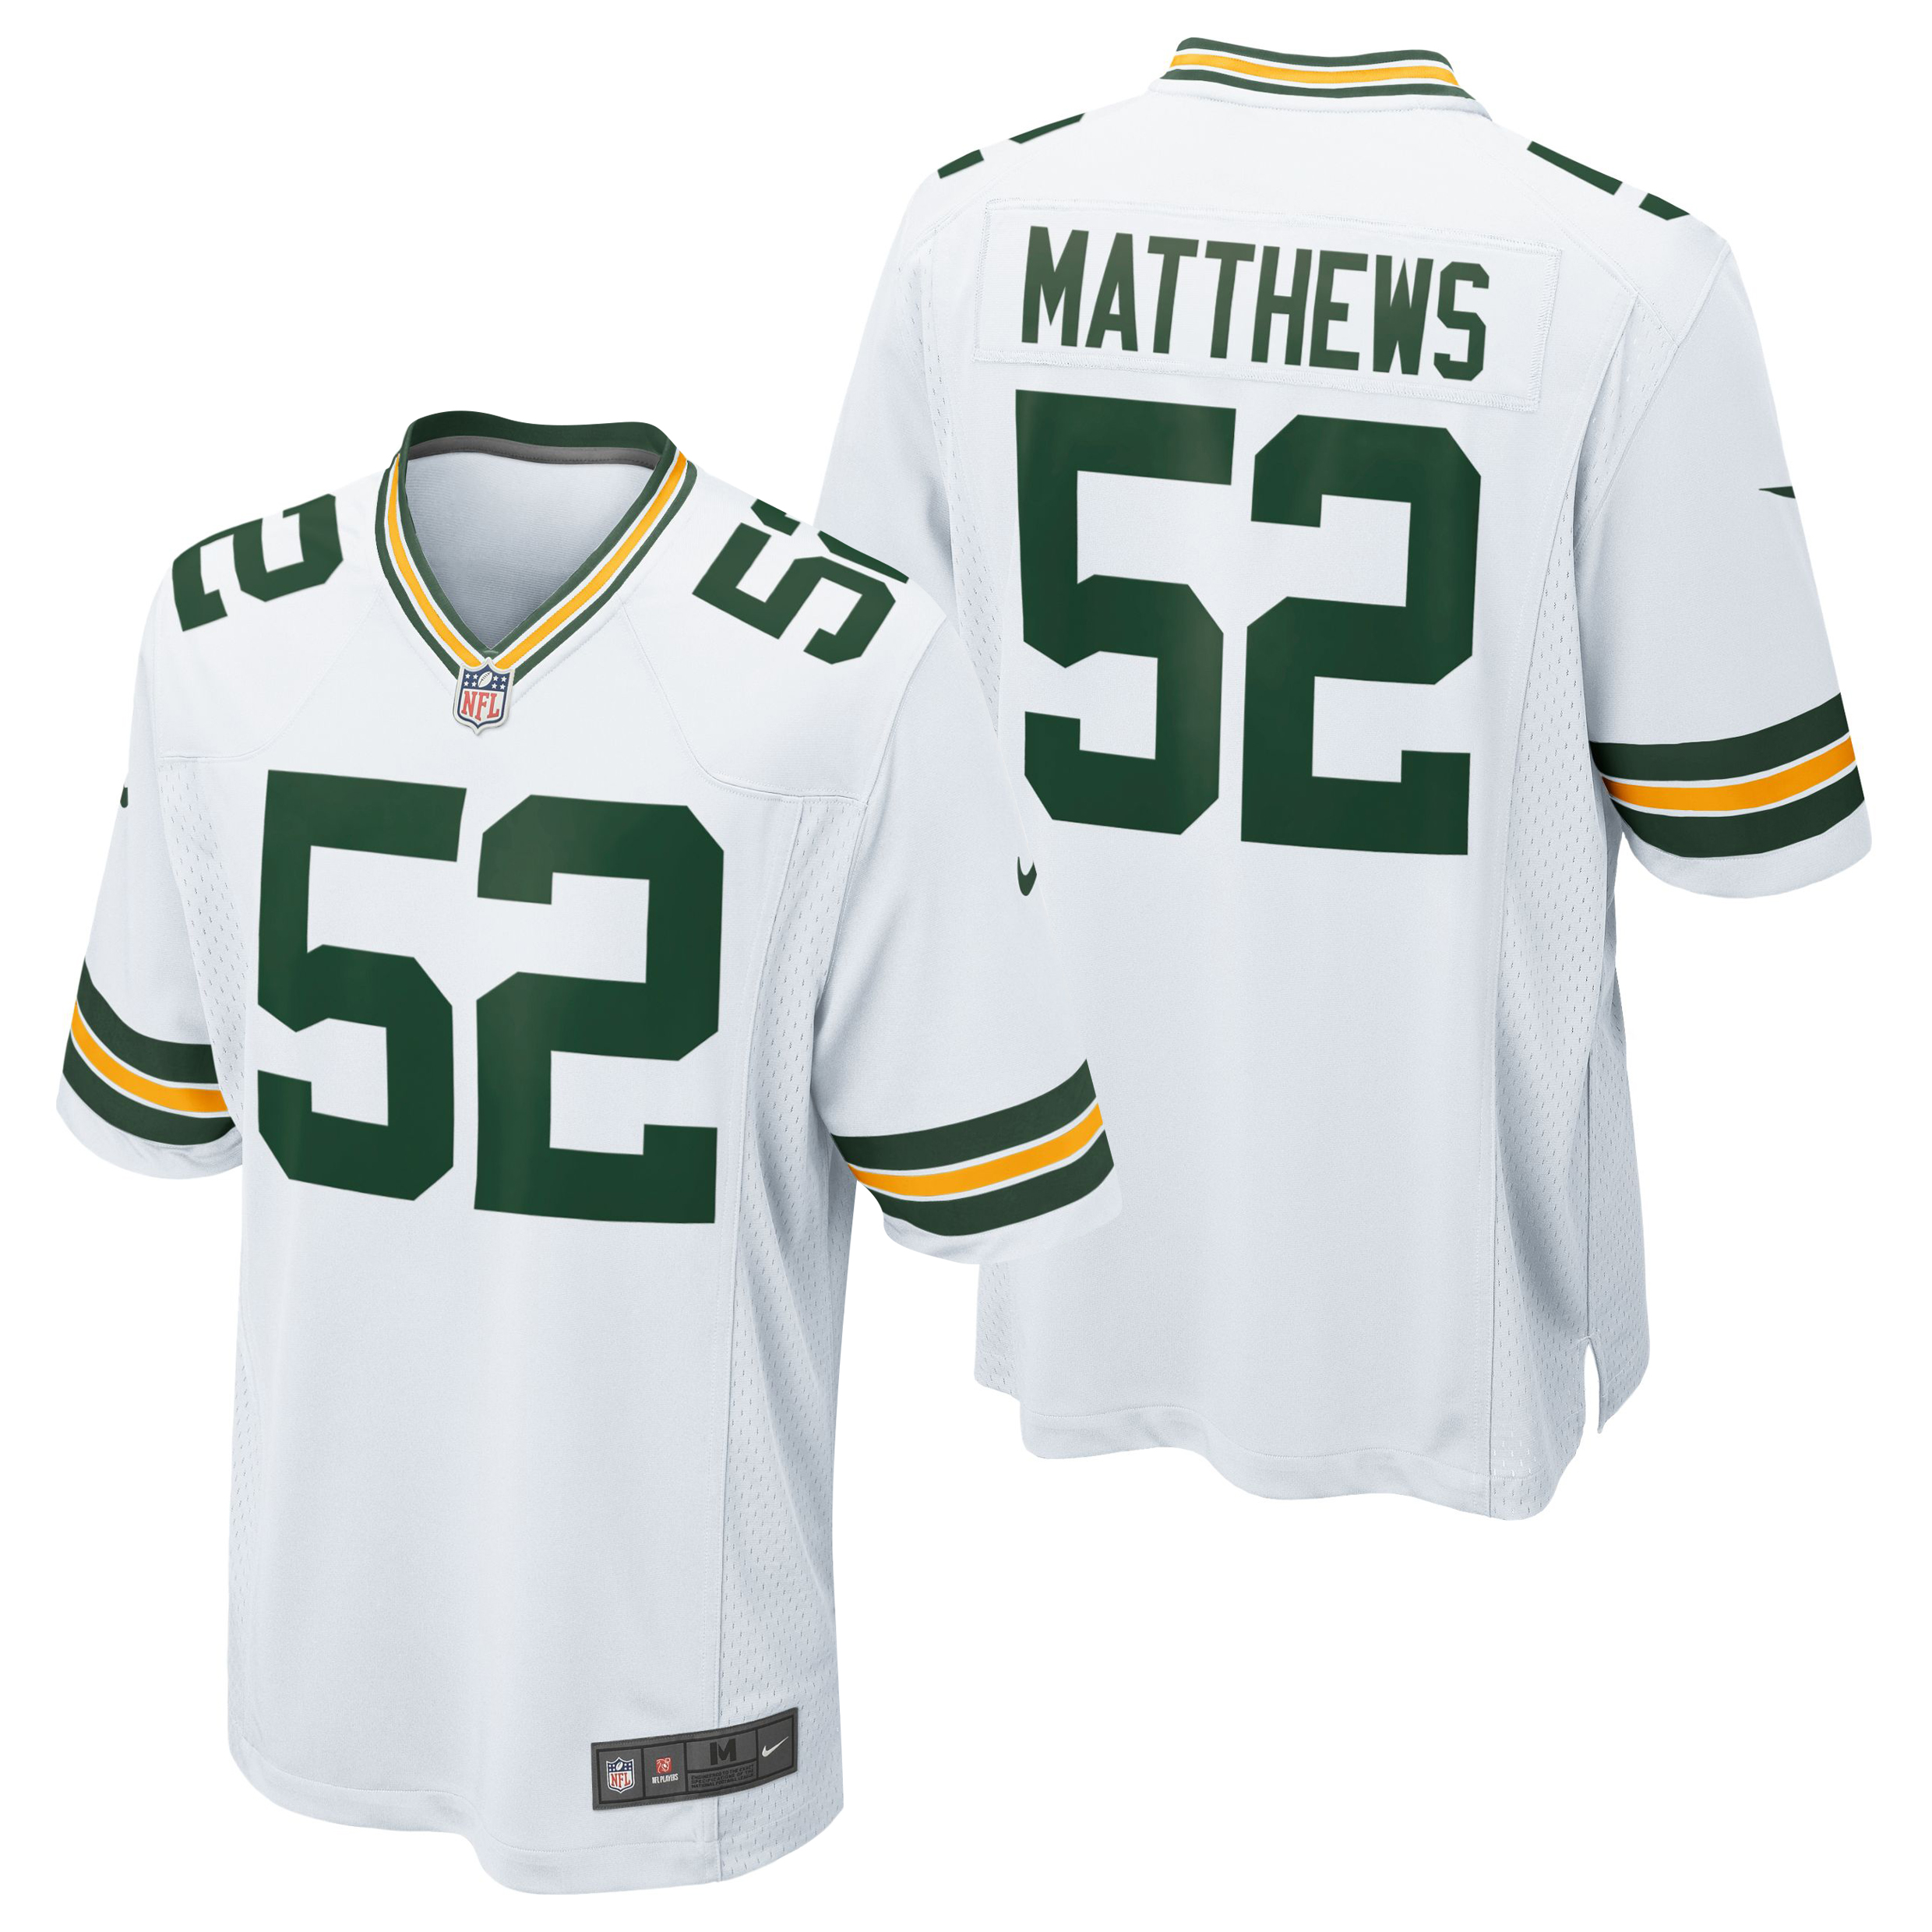 Green Bay Packers Road Game Jersey - Clay Matthews